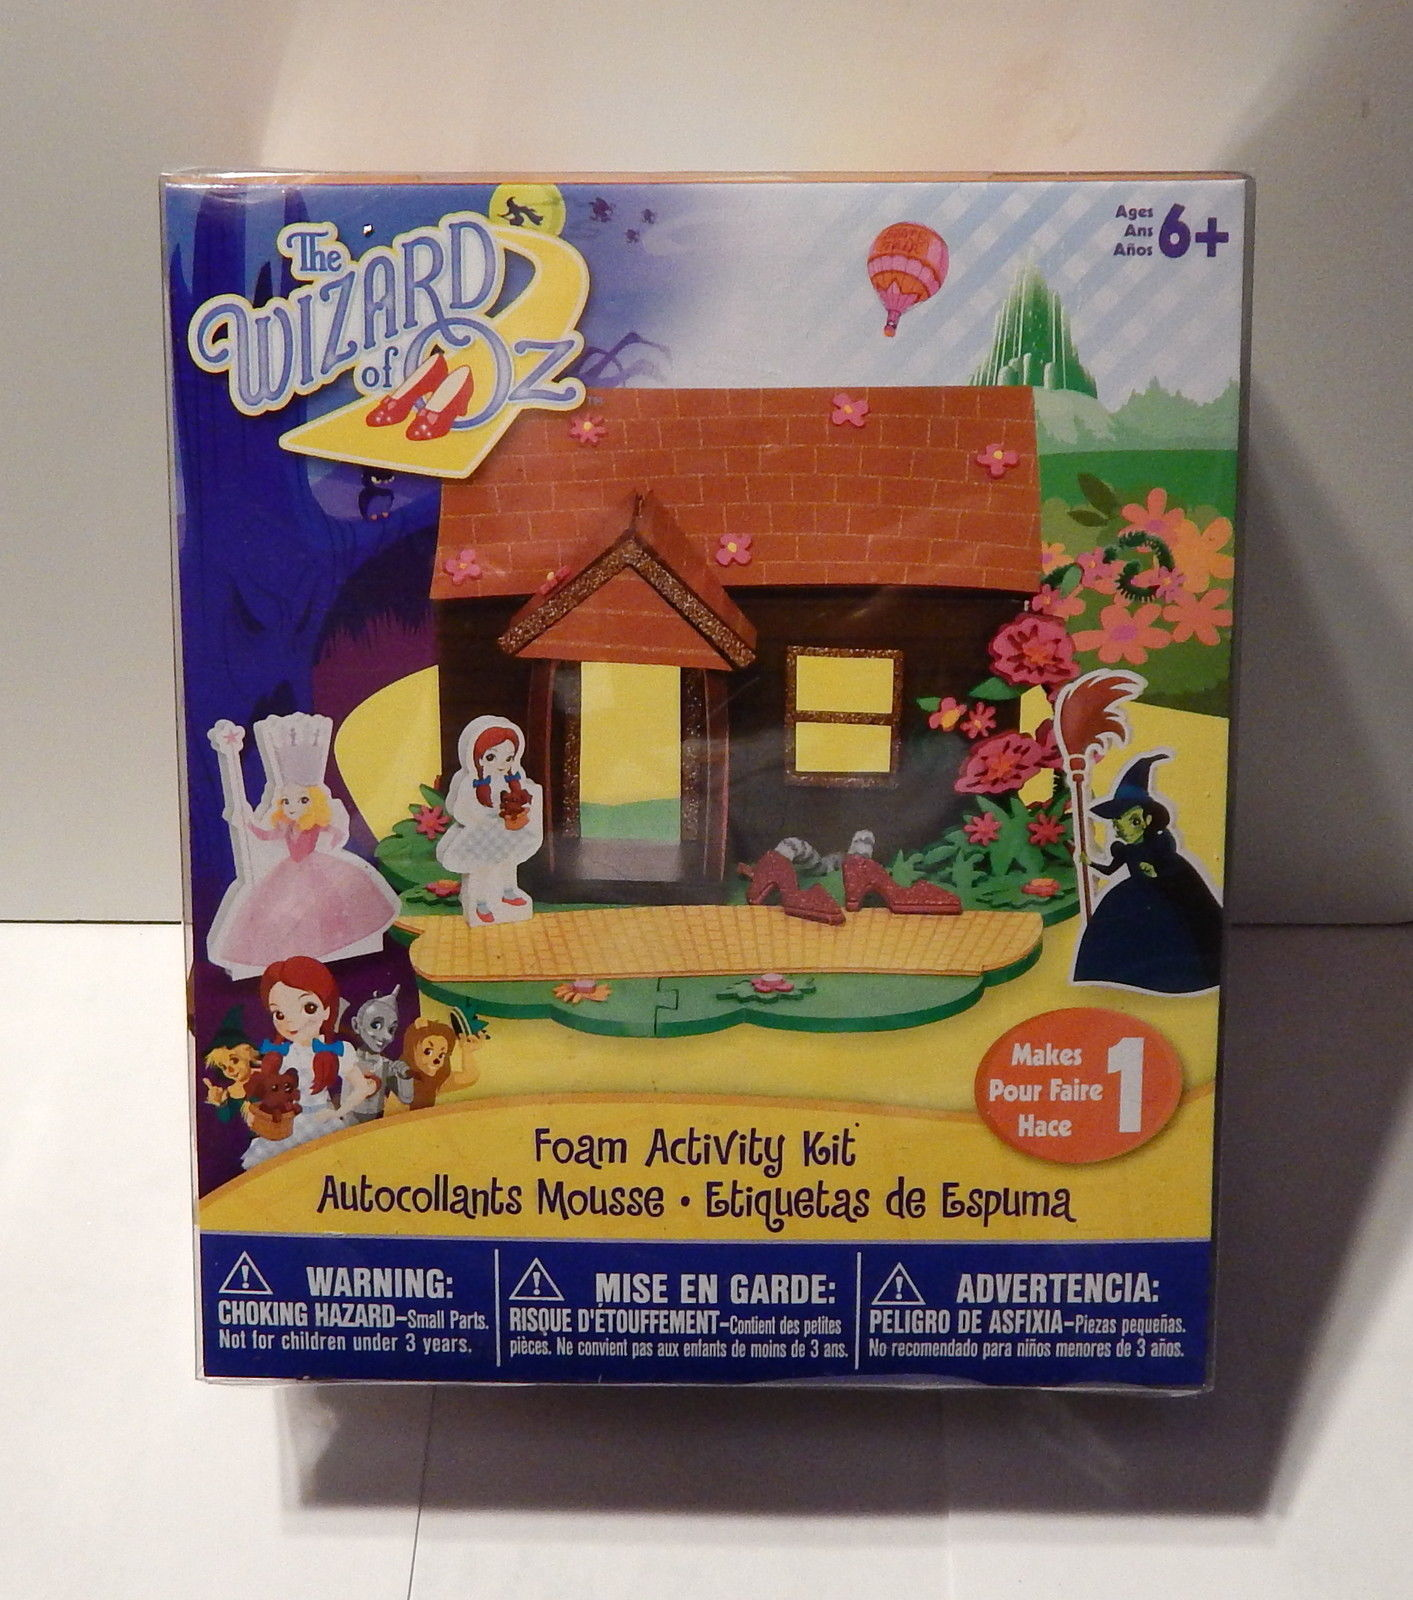 The Wizard Of Oz Foam Activity Kit 6+Dorothy's House 30 Foam Shapes Stickers 64B